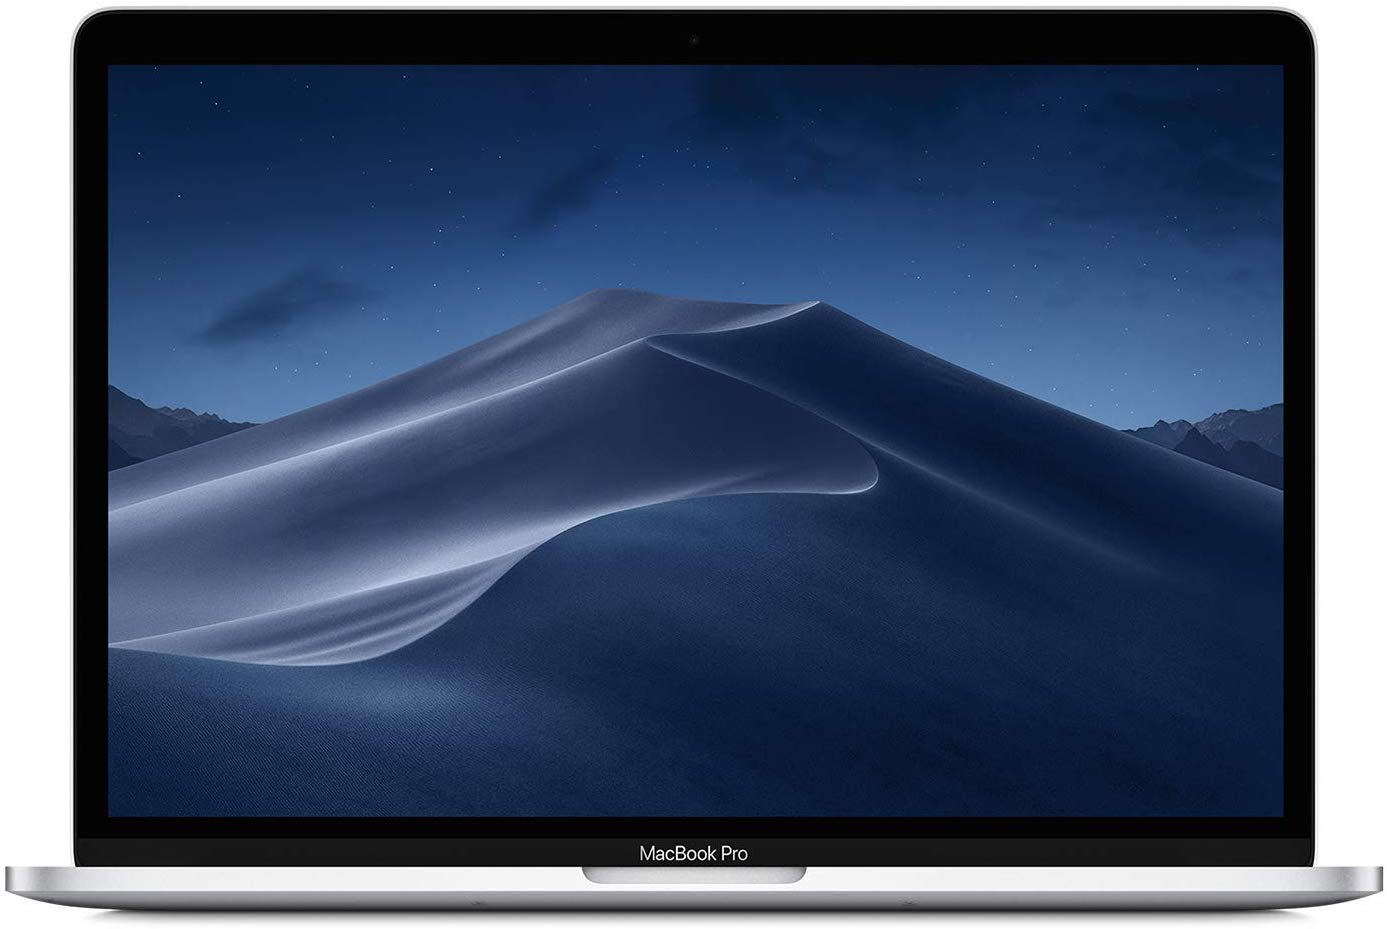 Apple Thunderbolt 3: All you need to know about Mac Thunderbolt 3 Devices 2